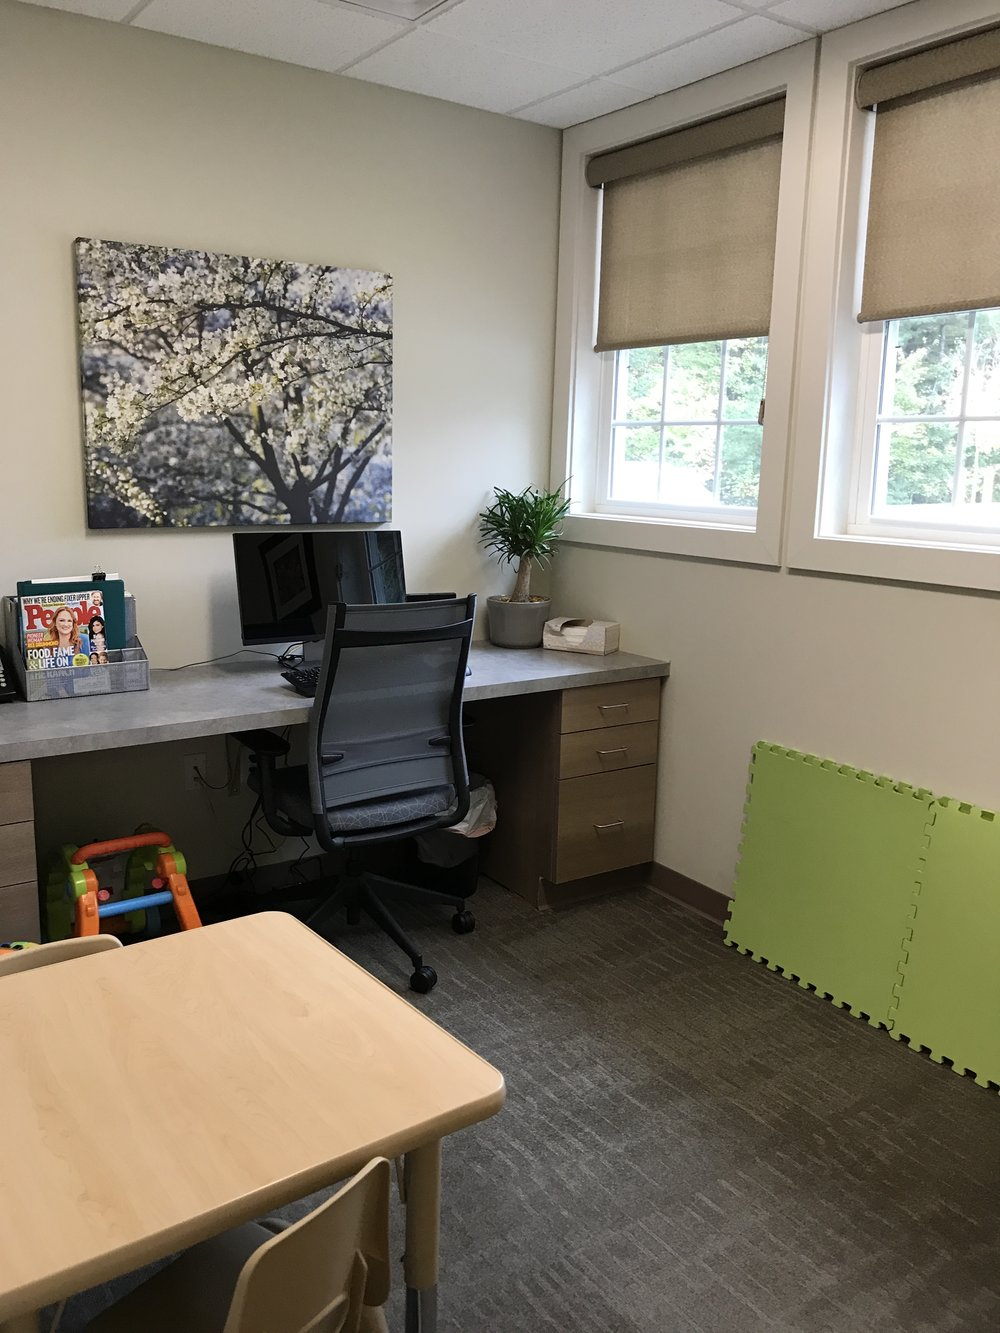 Clifton park physical therapy - Infant Room Jpg